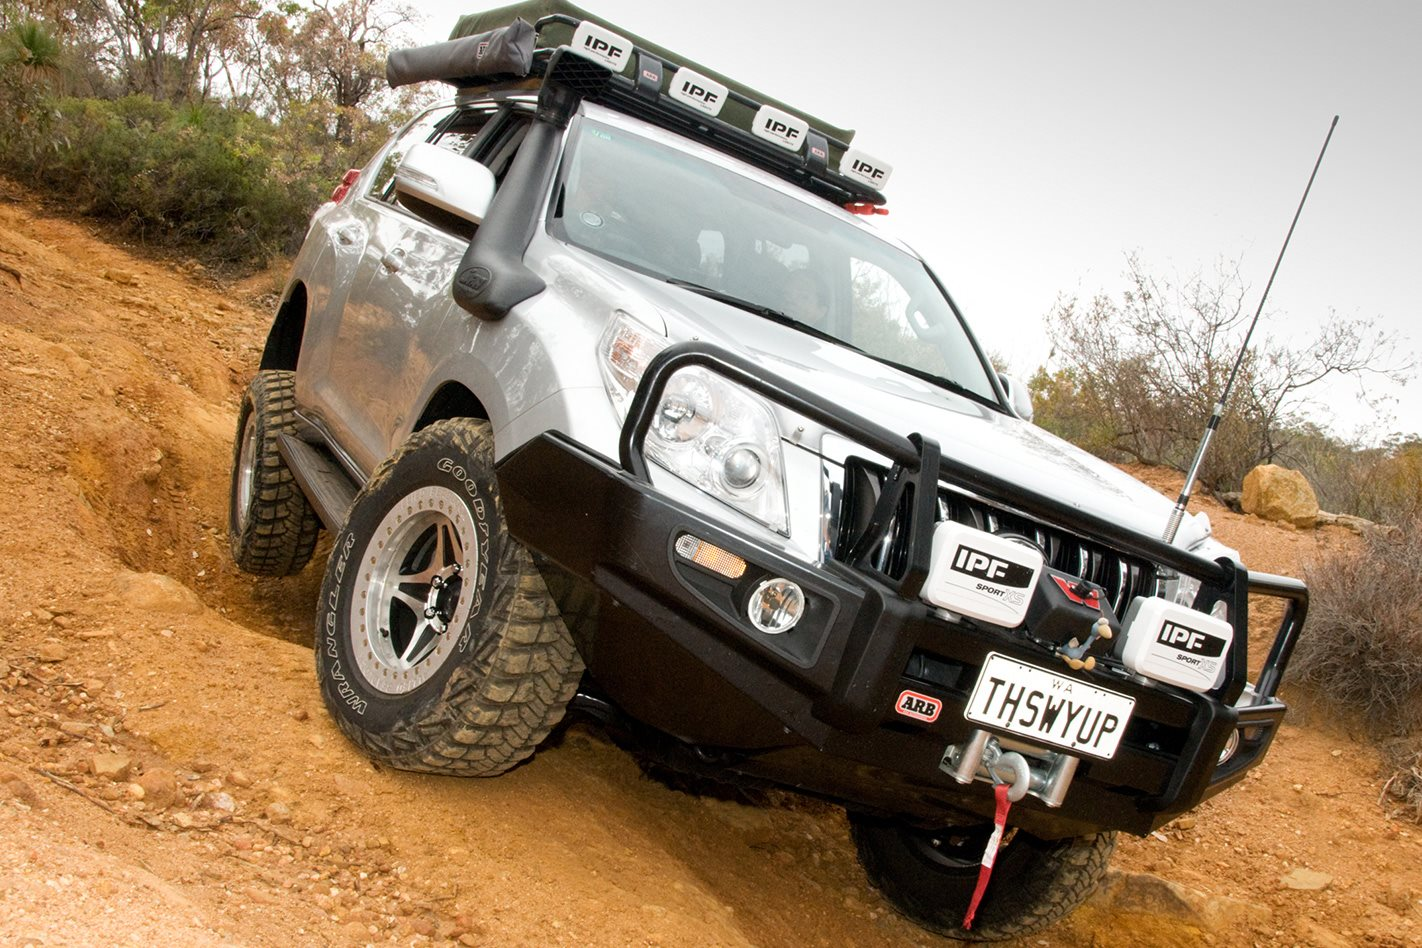 2011 Toyota Prado 150 Series GXL traction control